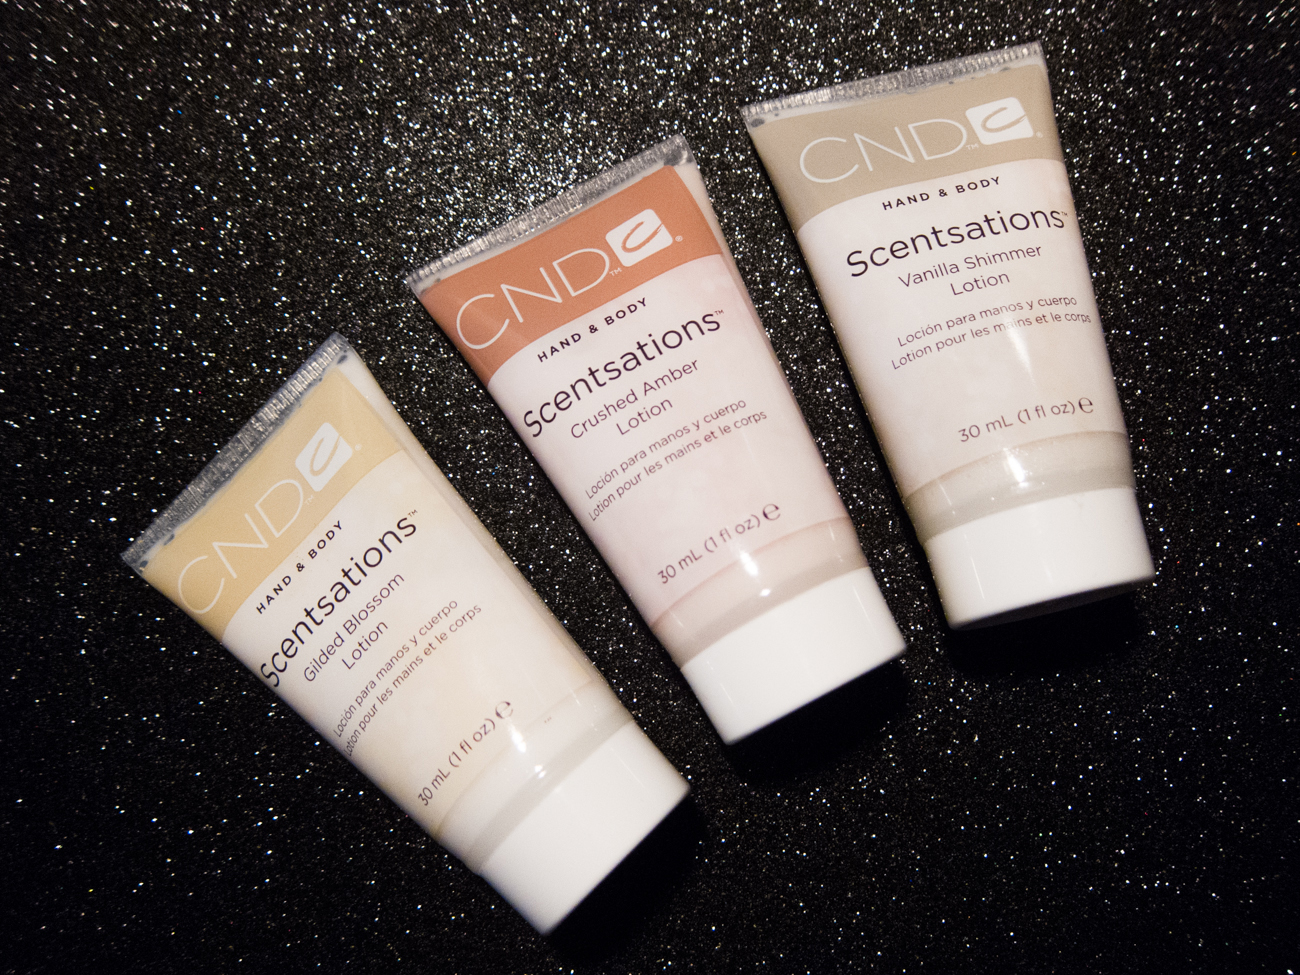 CND Scentsations Gilded Dreams lotion trio via @chalkboardnails